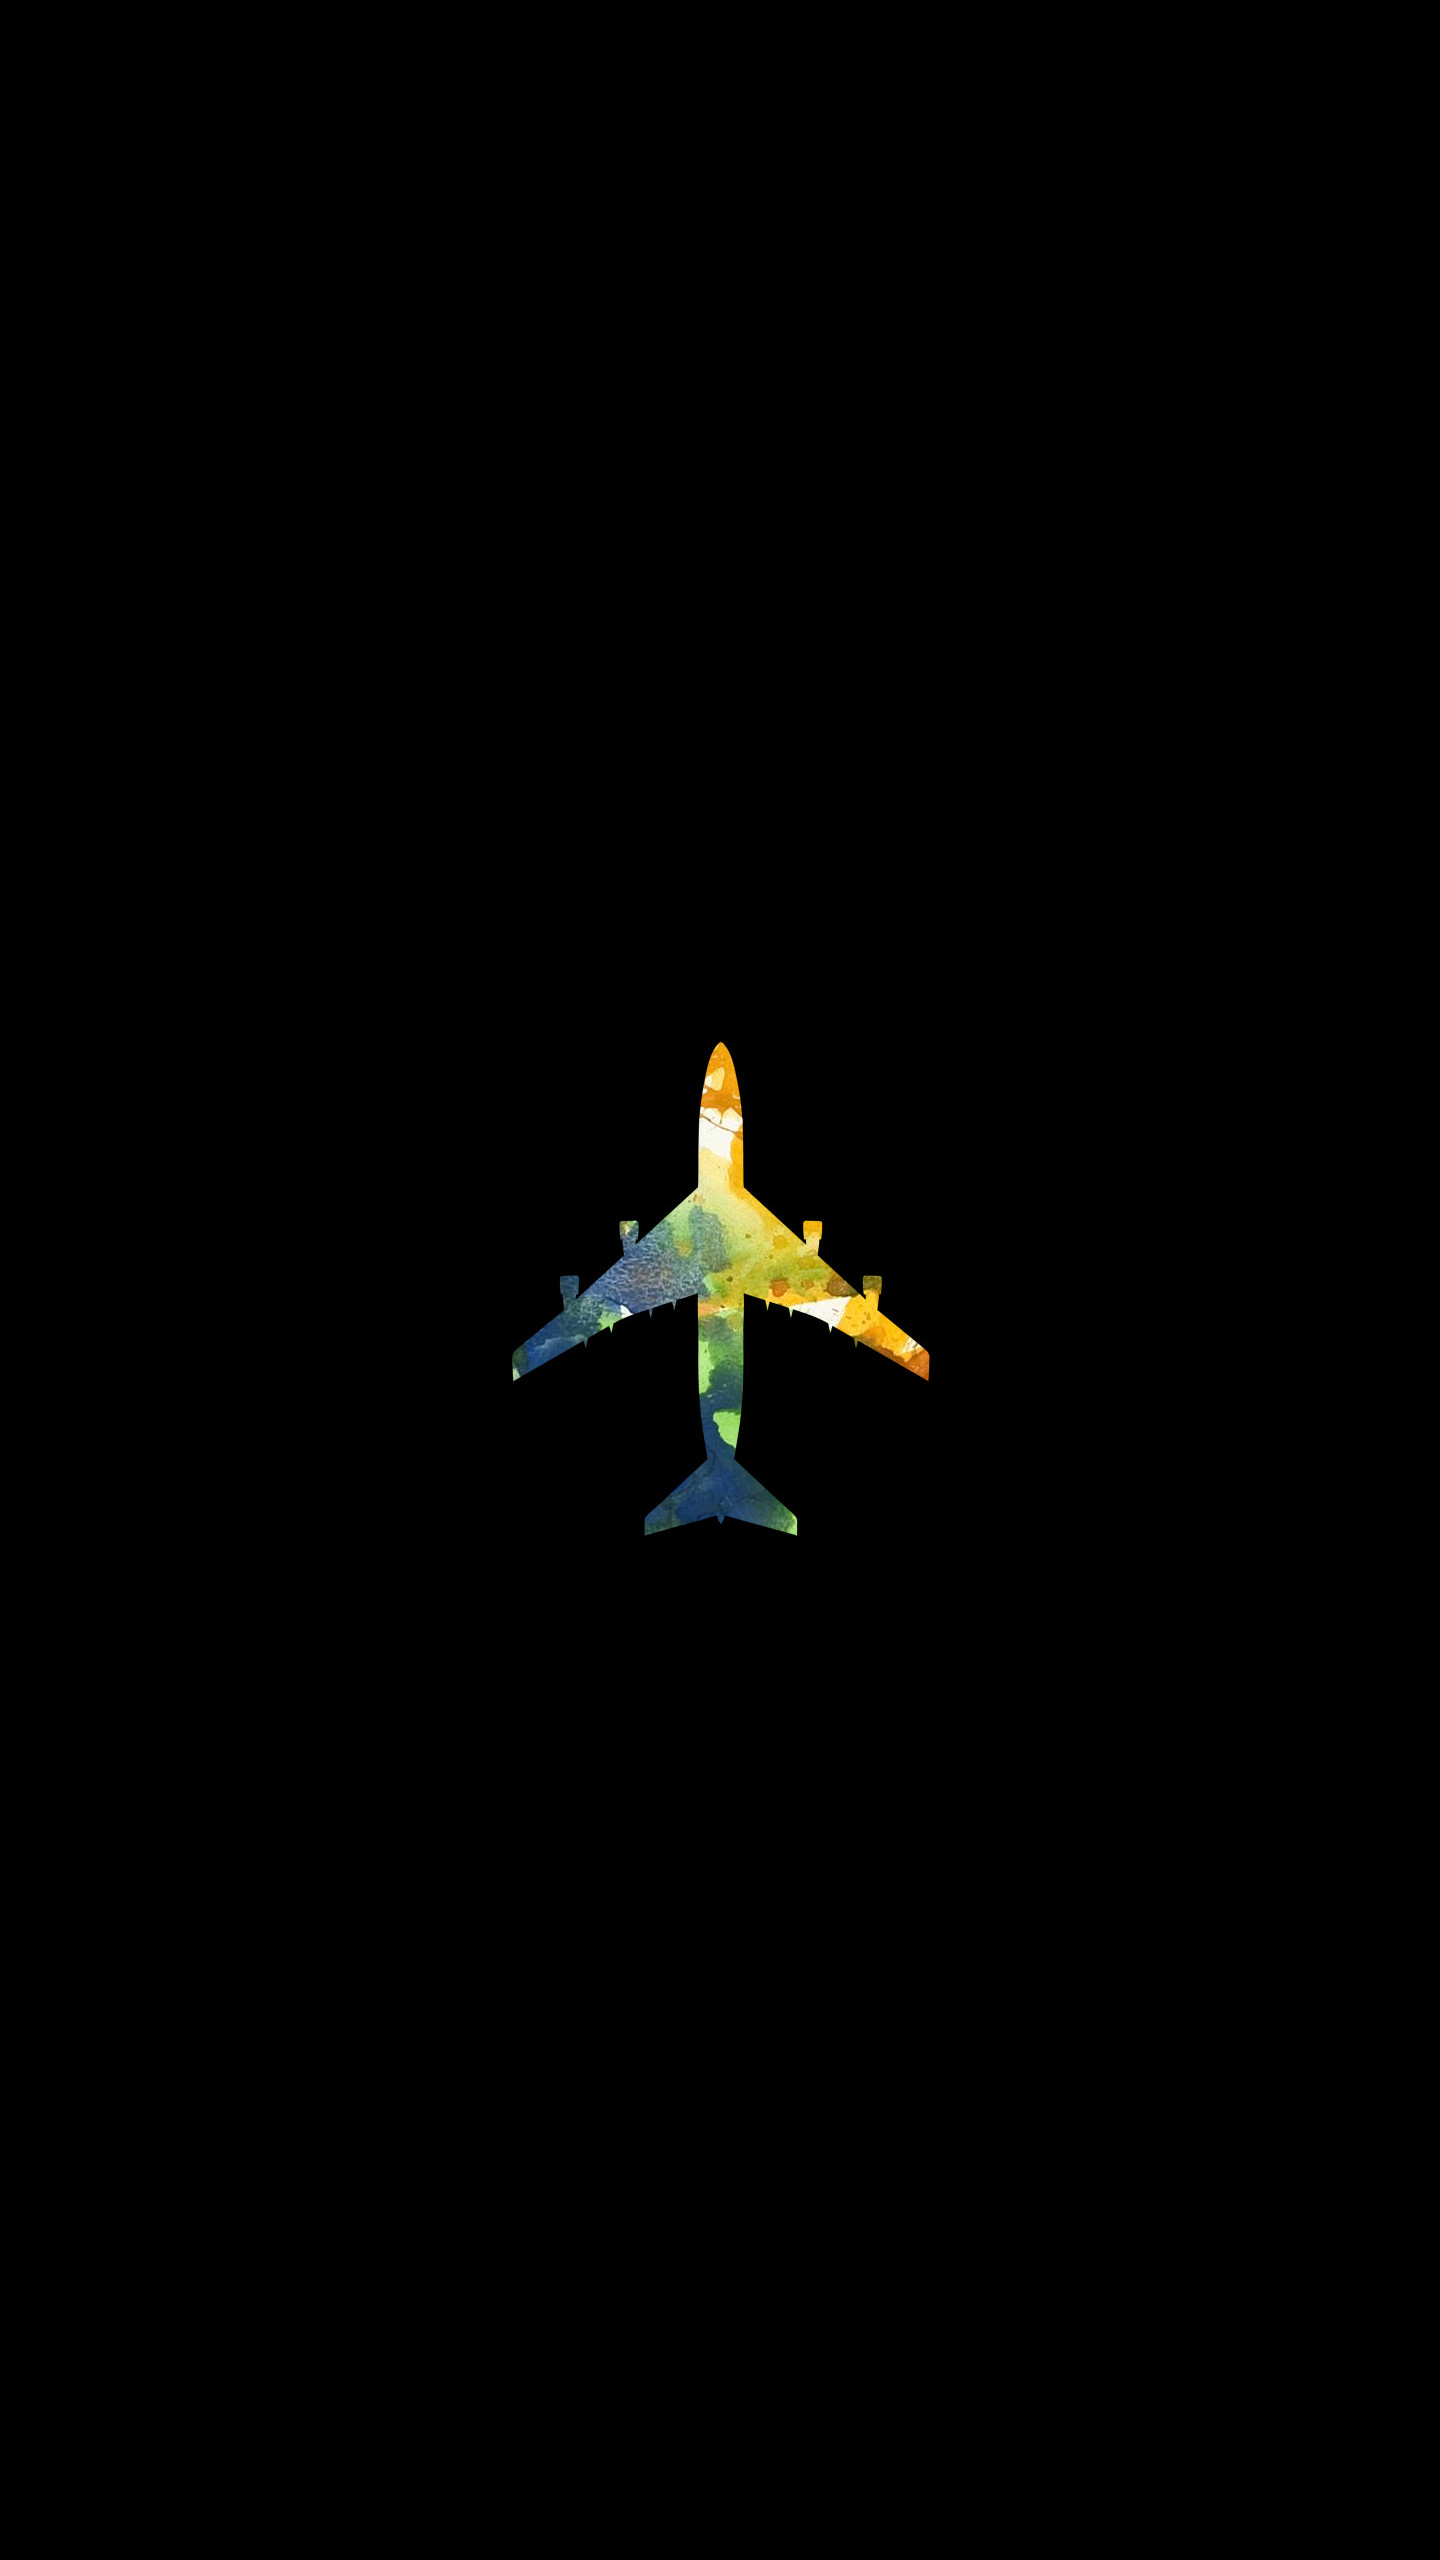 Aviation Wallpapers 72 Images